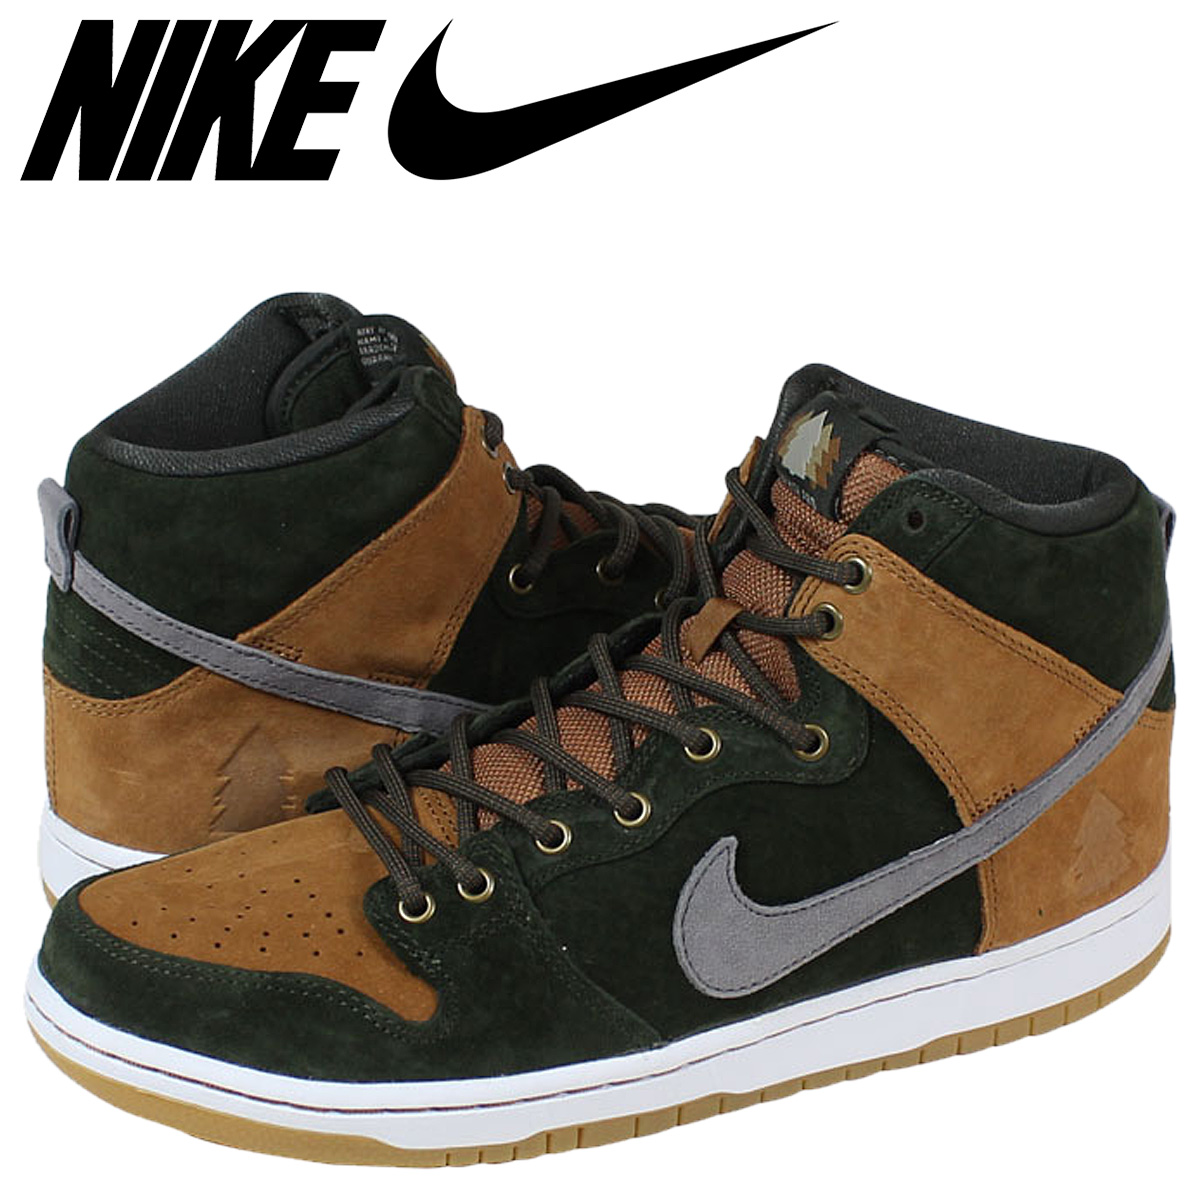 official photos f4593 f04b2 [SOLD OUT] Nike NIKE dunk sneakers collaboration DUNK HIGH PREMIUM SB HG QS  839693-302 Brown mens